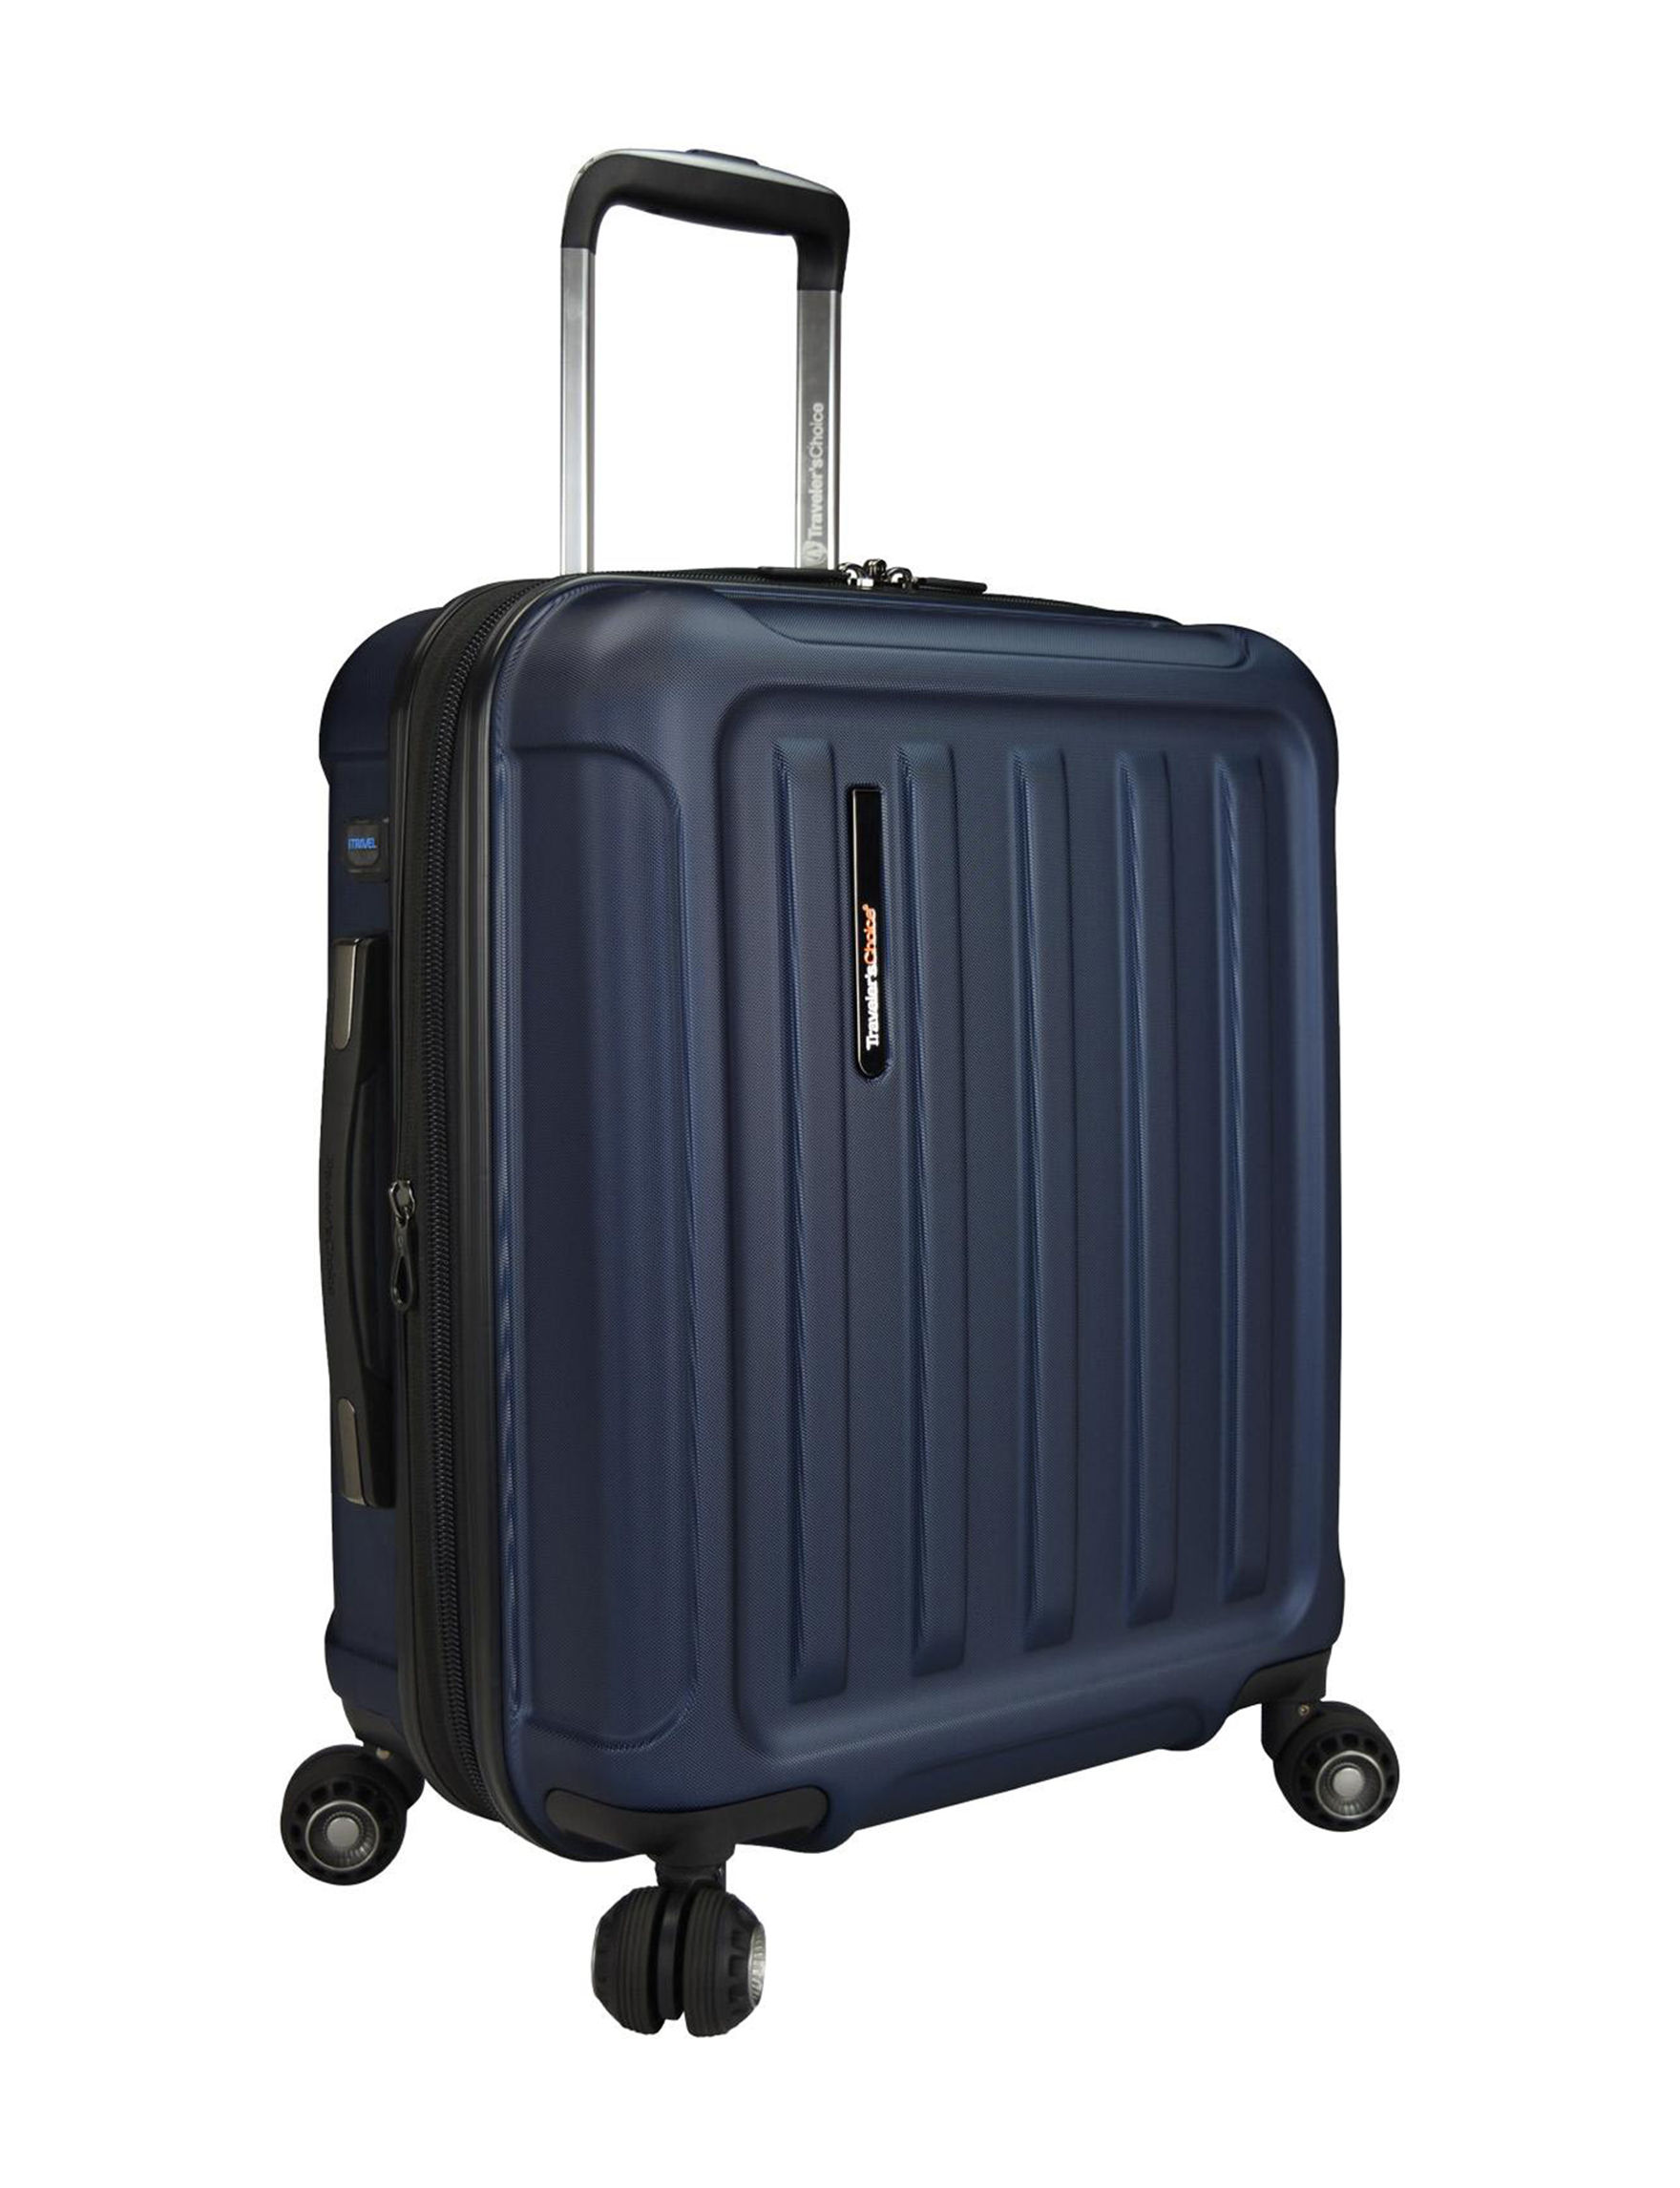 Travelers Choice Navy Carry On Luggage Upright Spinners